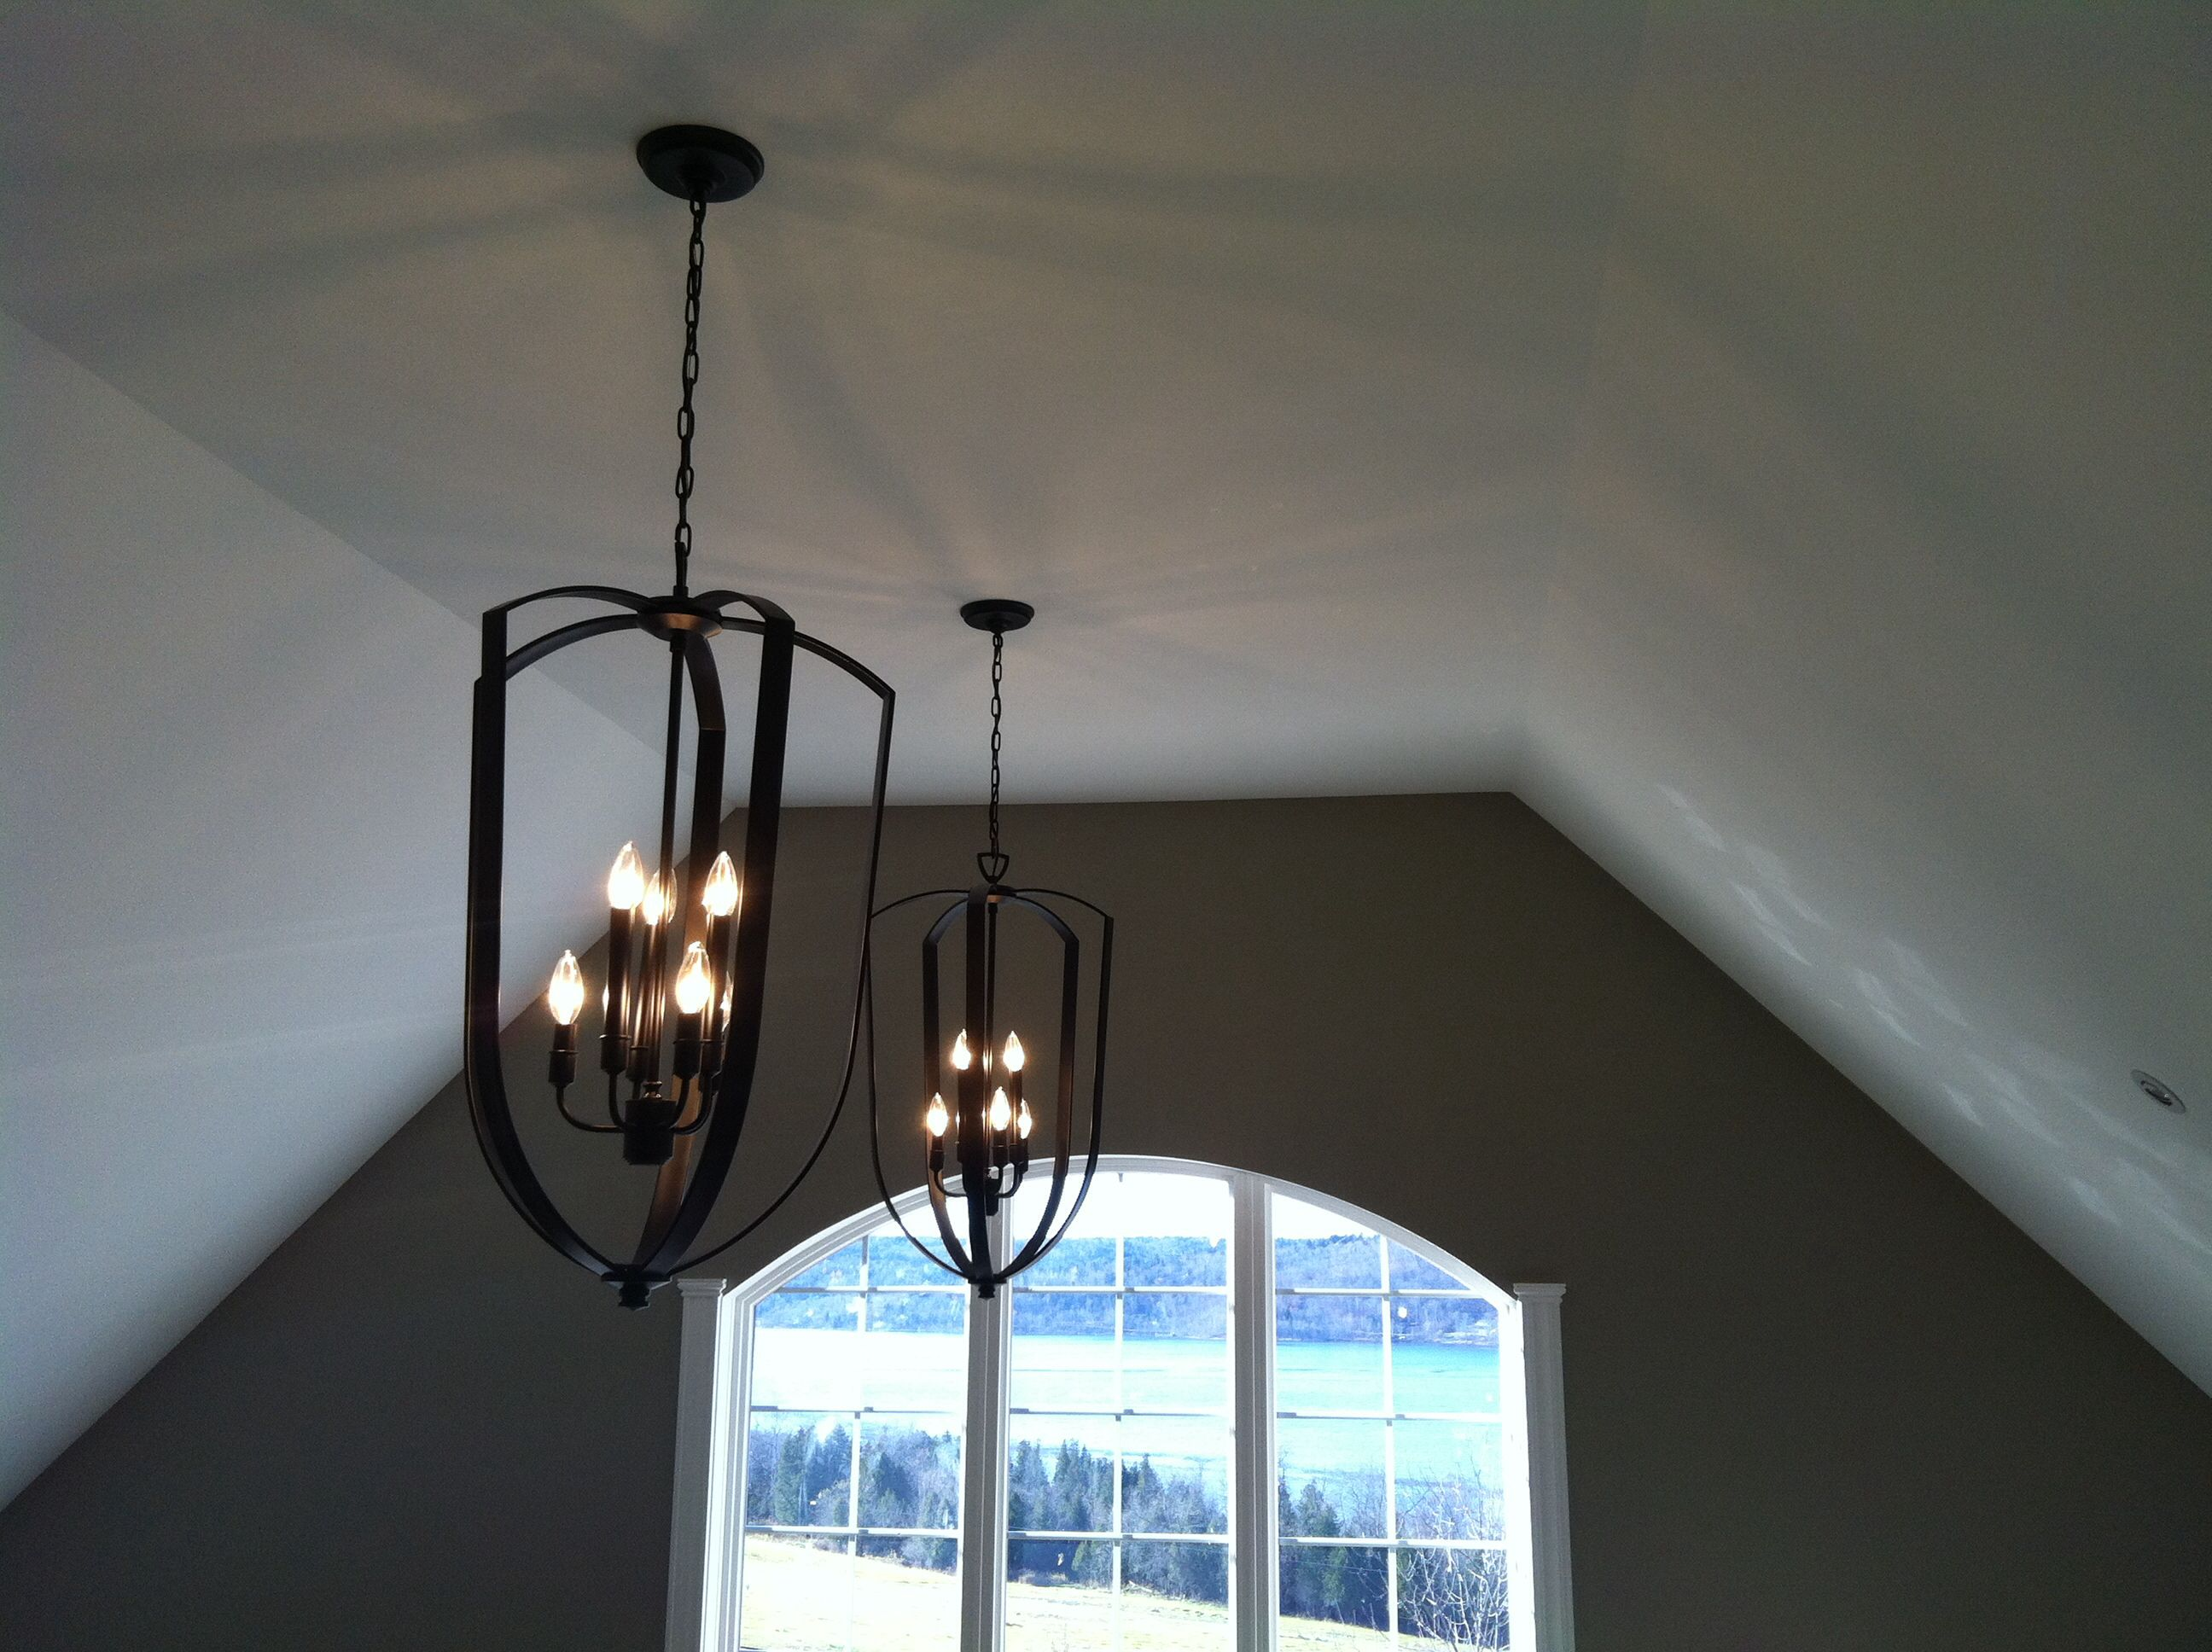 Cathedral ceiling light fixtures economical home lighting for Vaulted ceiling lighting solutions